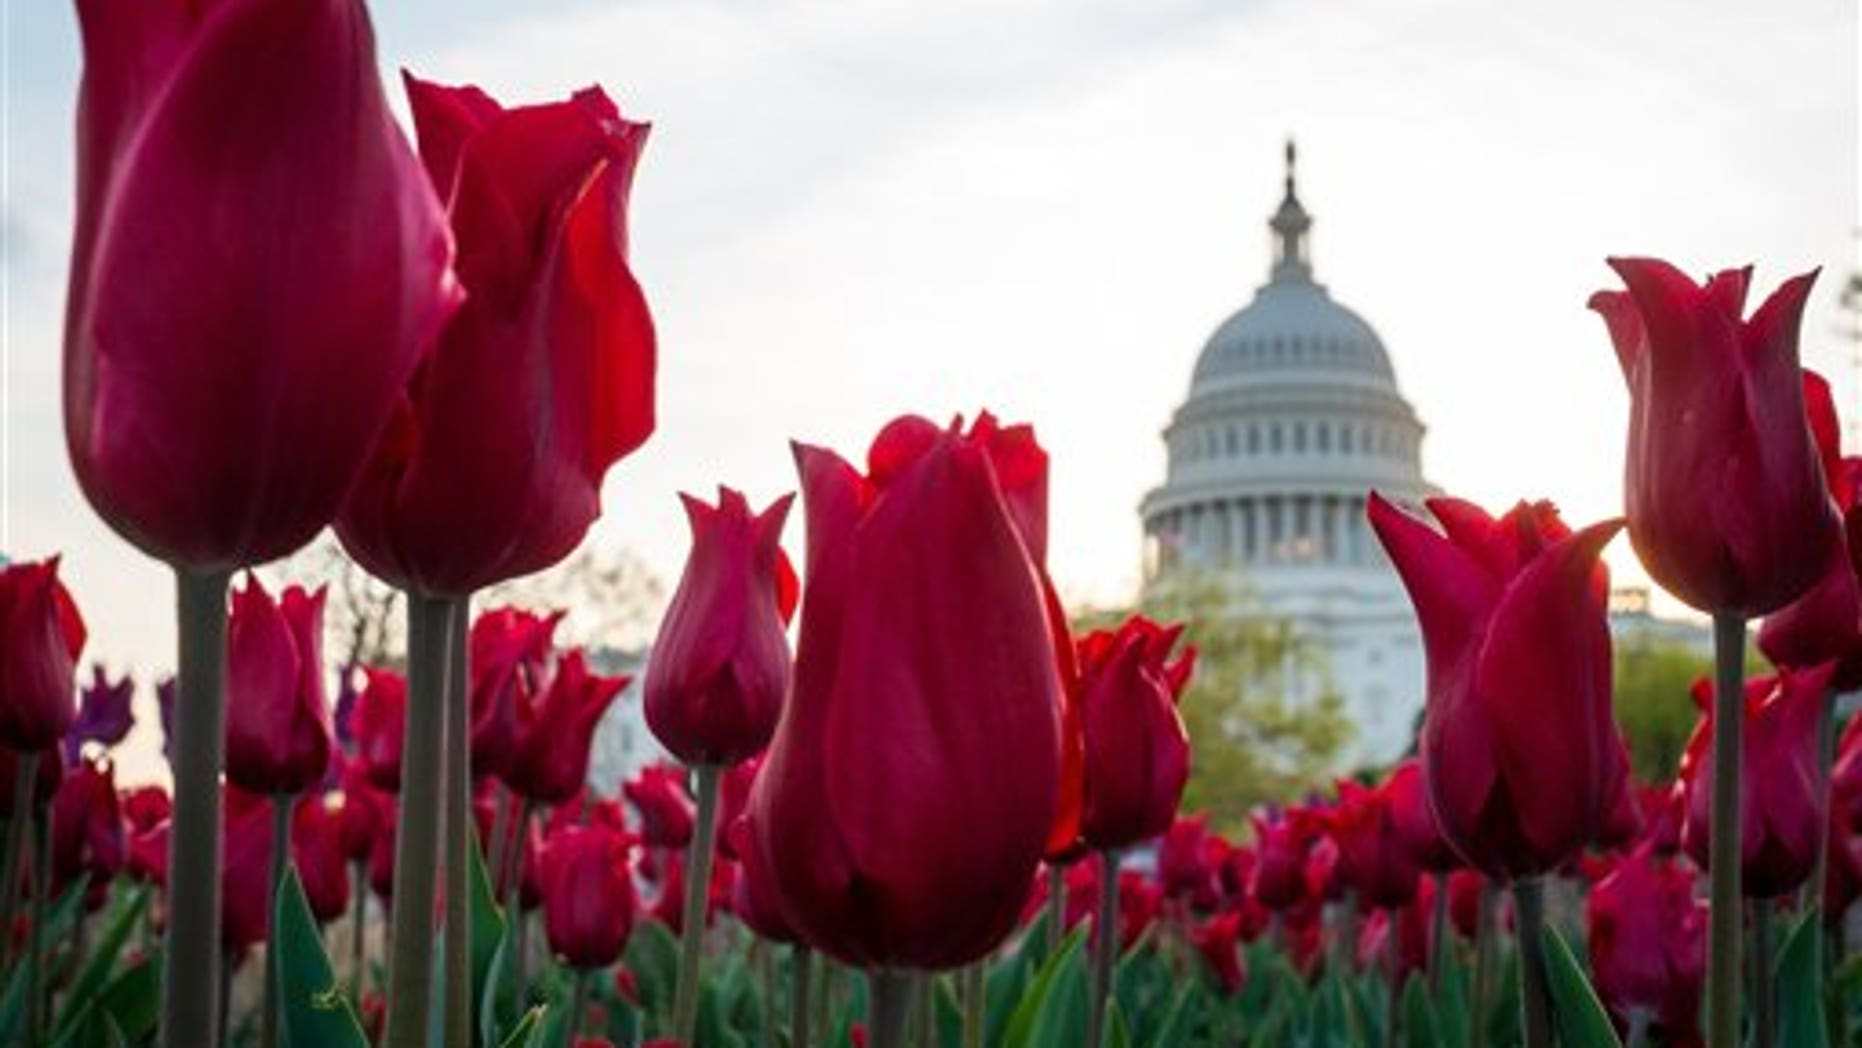 In this April 22, 2014, photo, tulips bloom in front of the Capitol in Washington. Congress gets back to work Monday, April 28, after a two-week vacation, and its looking like lawmakers will do what they do best: the bare minimum. Forget immigration, a tax overhaul, stiffer gun checks. Theyre all DOA. Raising the minimum wage or restoring lost unemployment benefits? Not going to happen. Forcing government approval of the Keystone XL pipeline? Veto bait.  (AP Photo/J. David Ake)